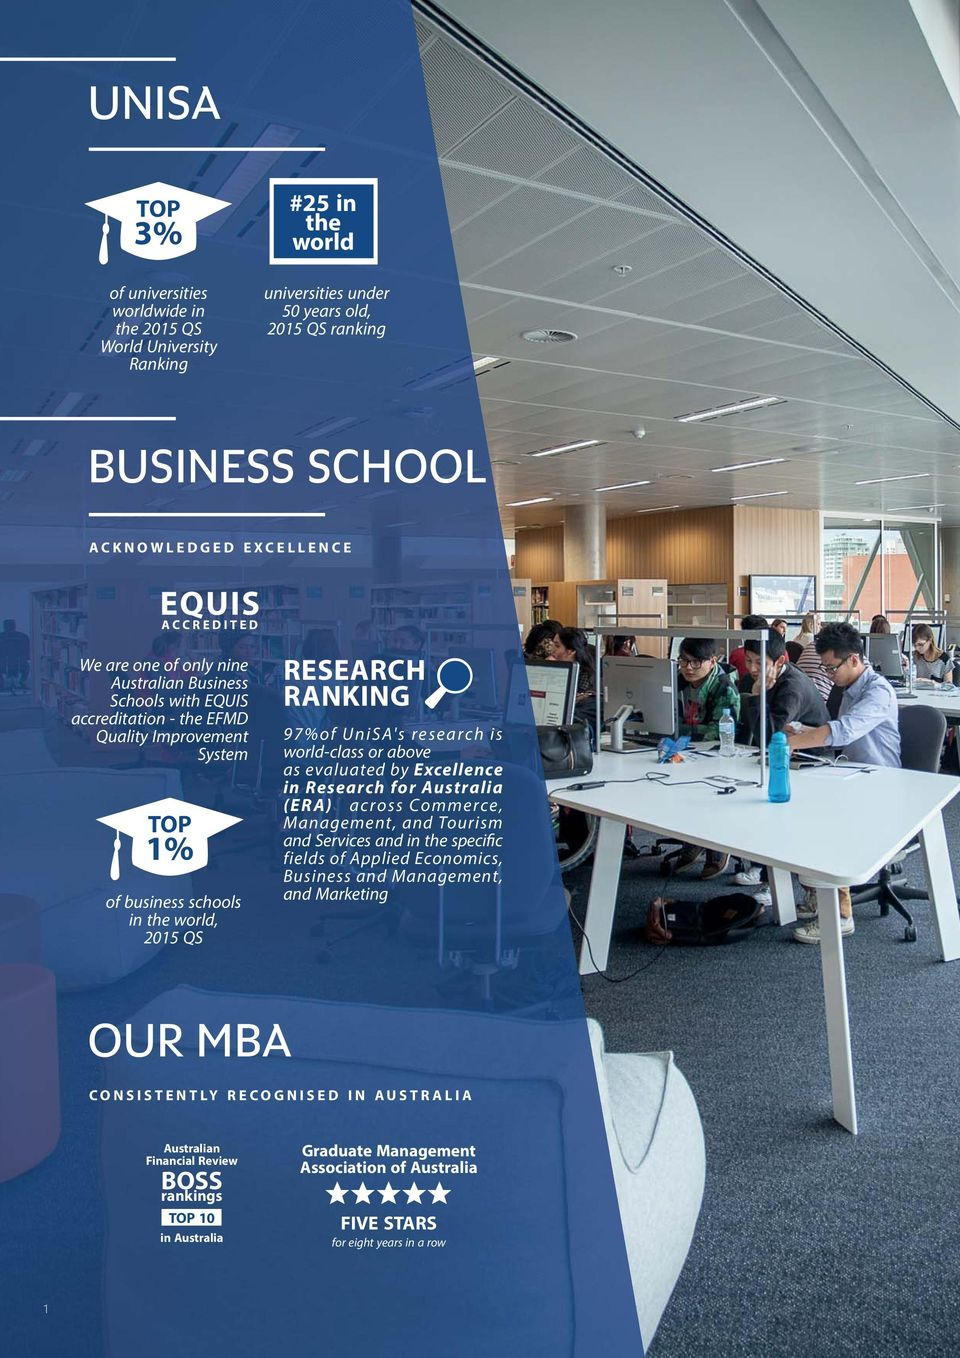 UniSA's research is world-class or above as evaluated by Excellence in Research for Australia (ERA) across Commerce, Management, and Tourism and Services and in the specific fields of Applied